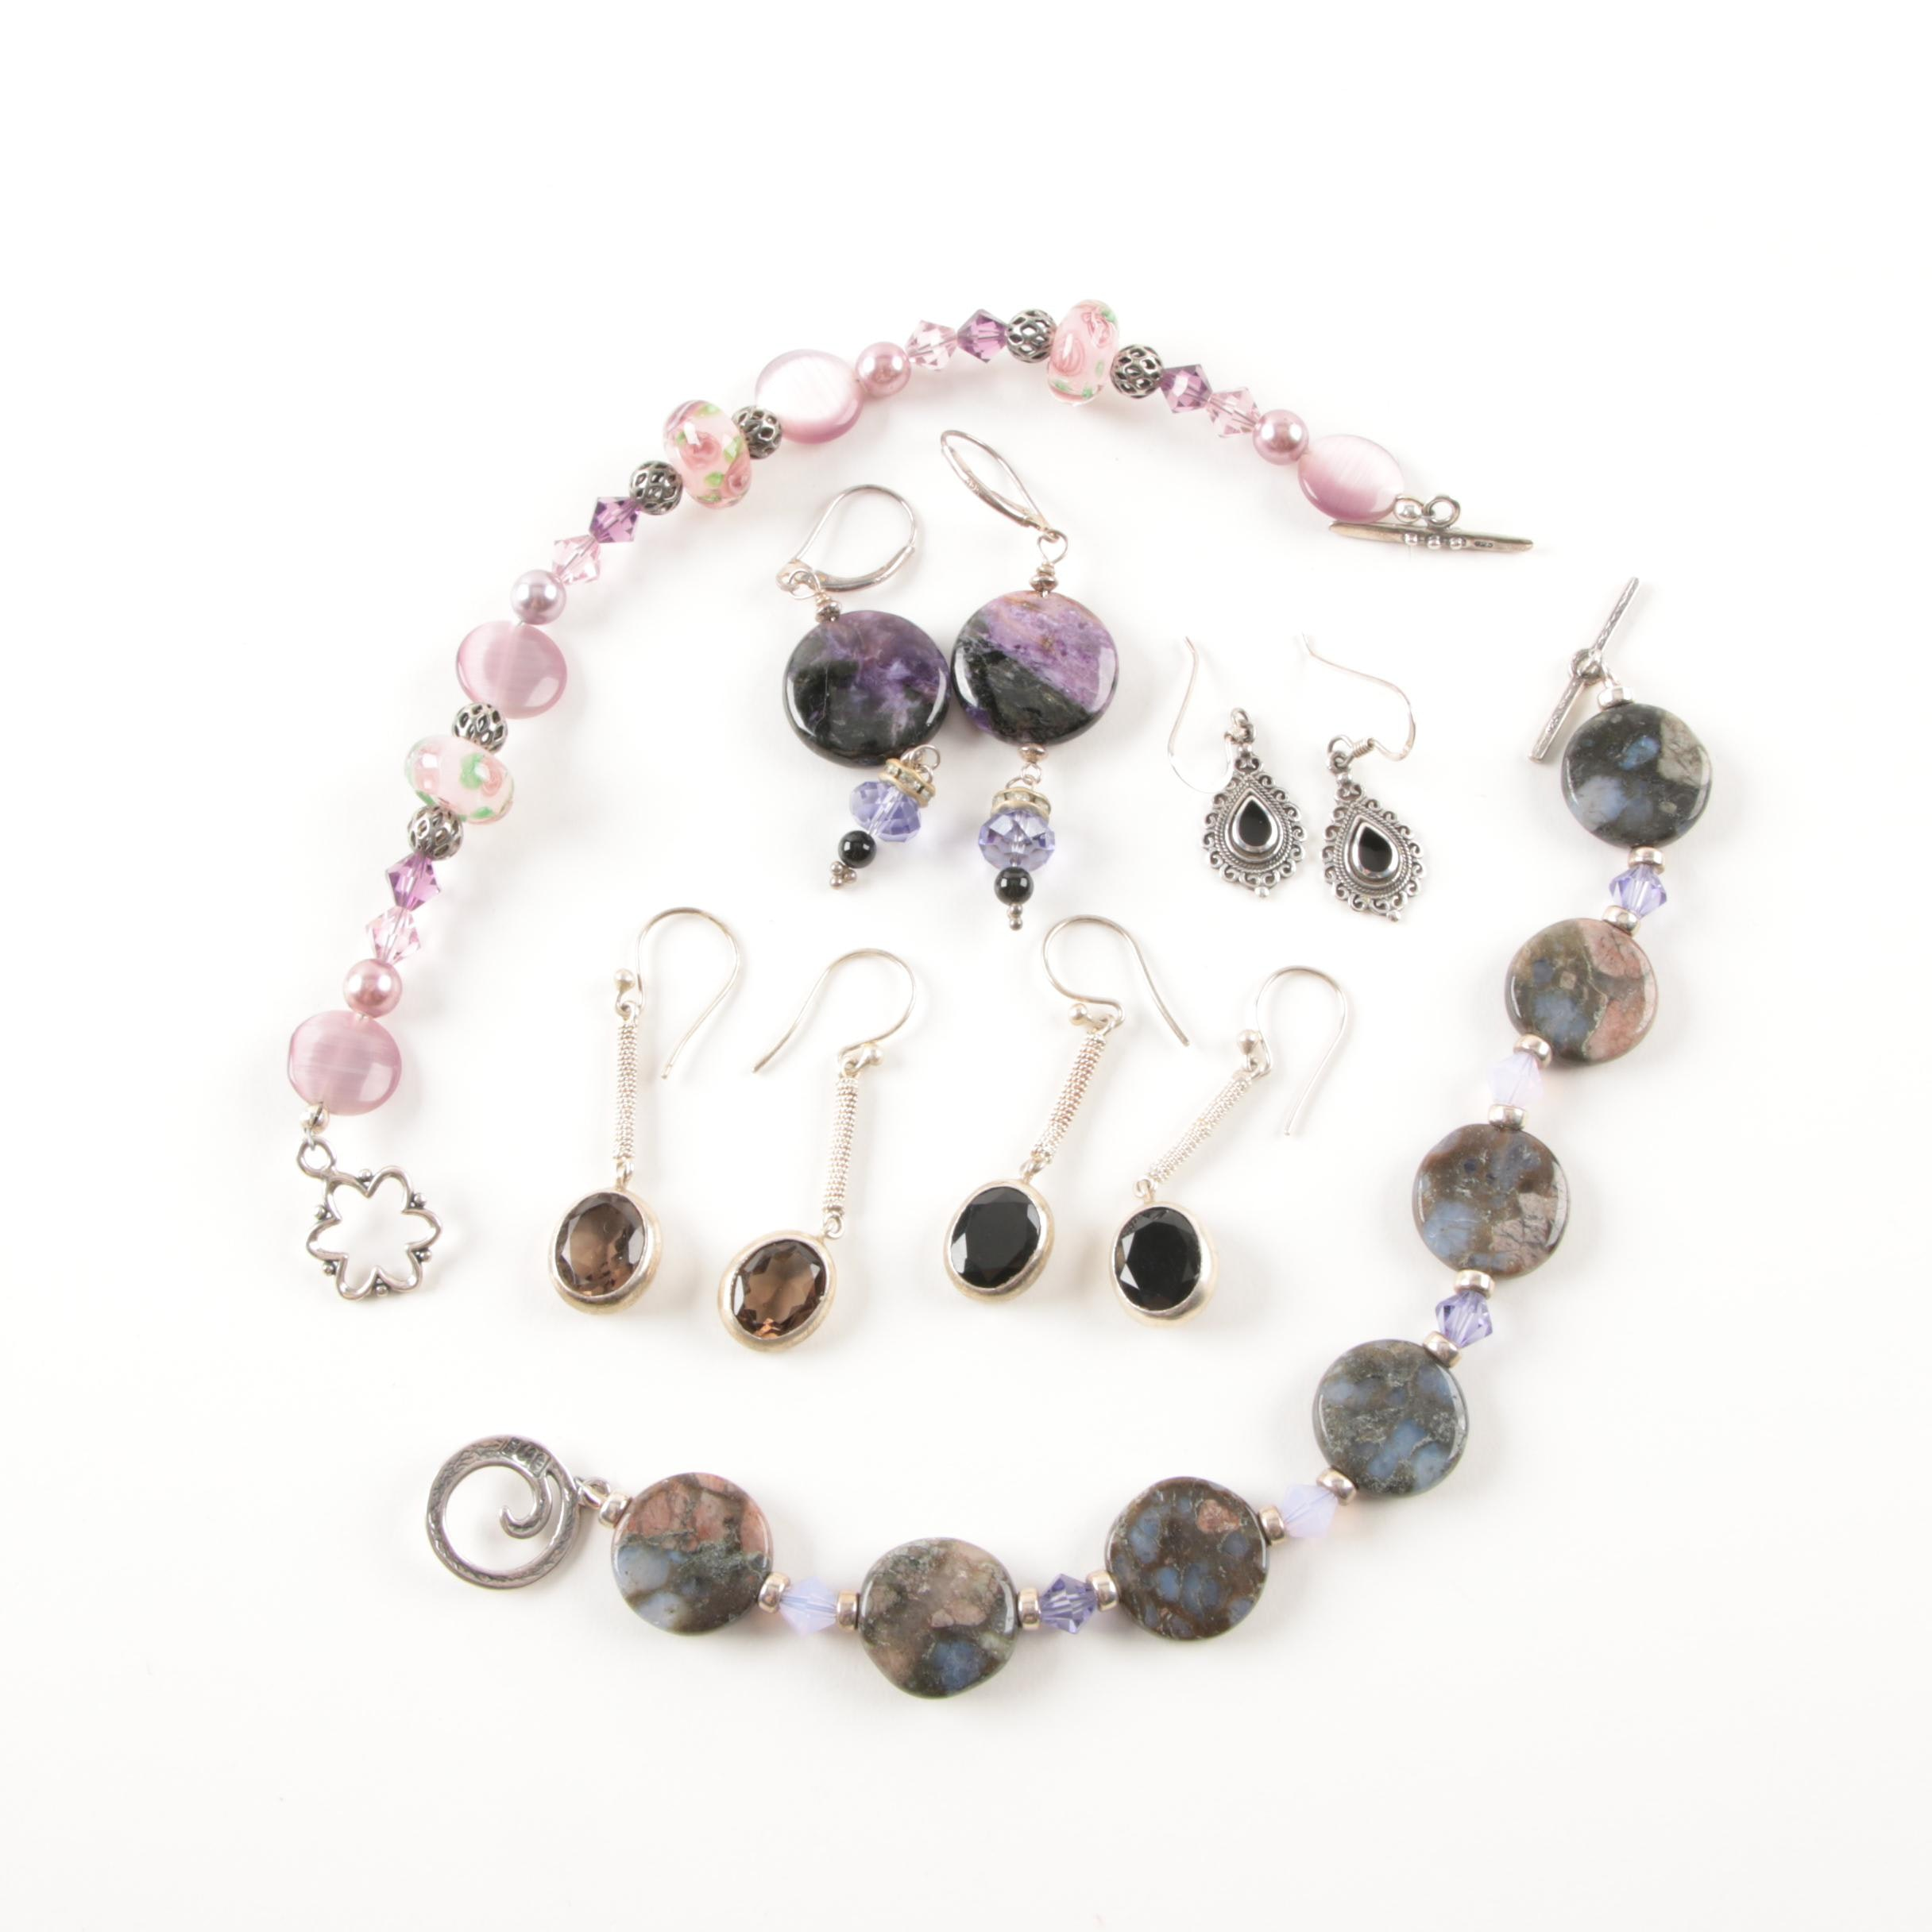 Sterling Silver Smoky Quartz, Agate, and Black Onyx Jewelry Selection